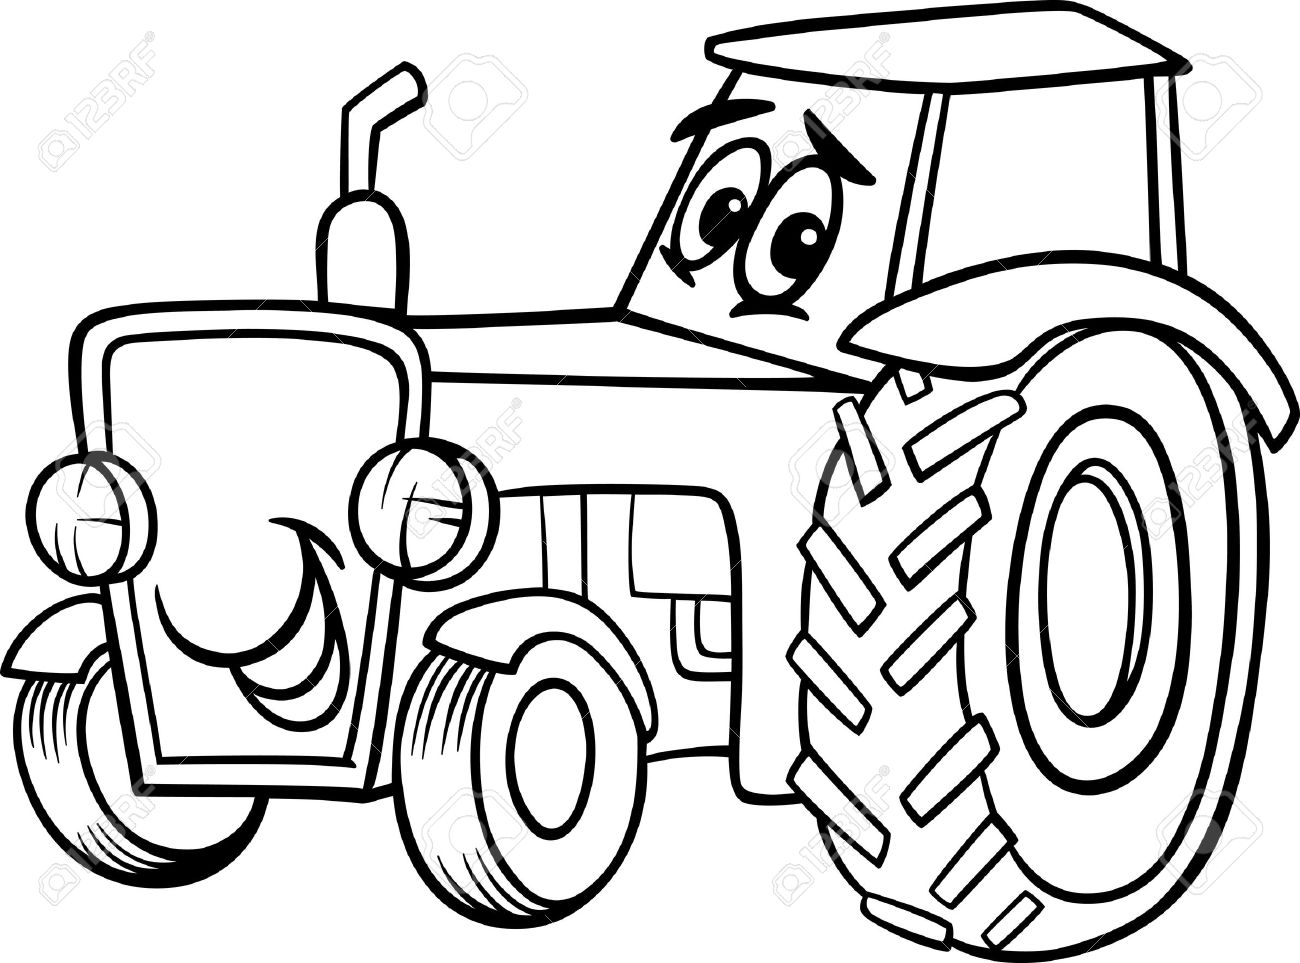 1300x963 Black And White Cartoon Illustration Of Funny Farm Tractor Vehicle